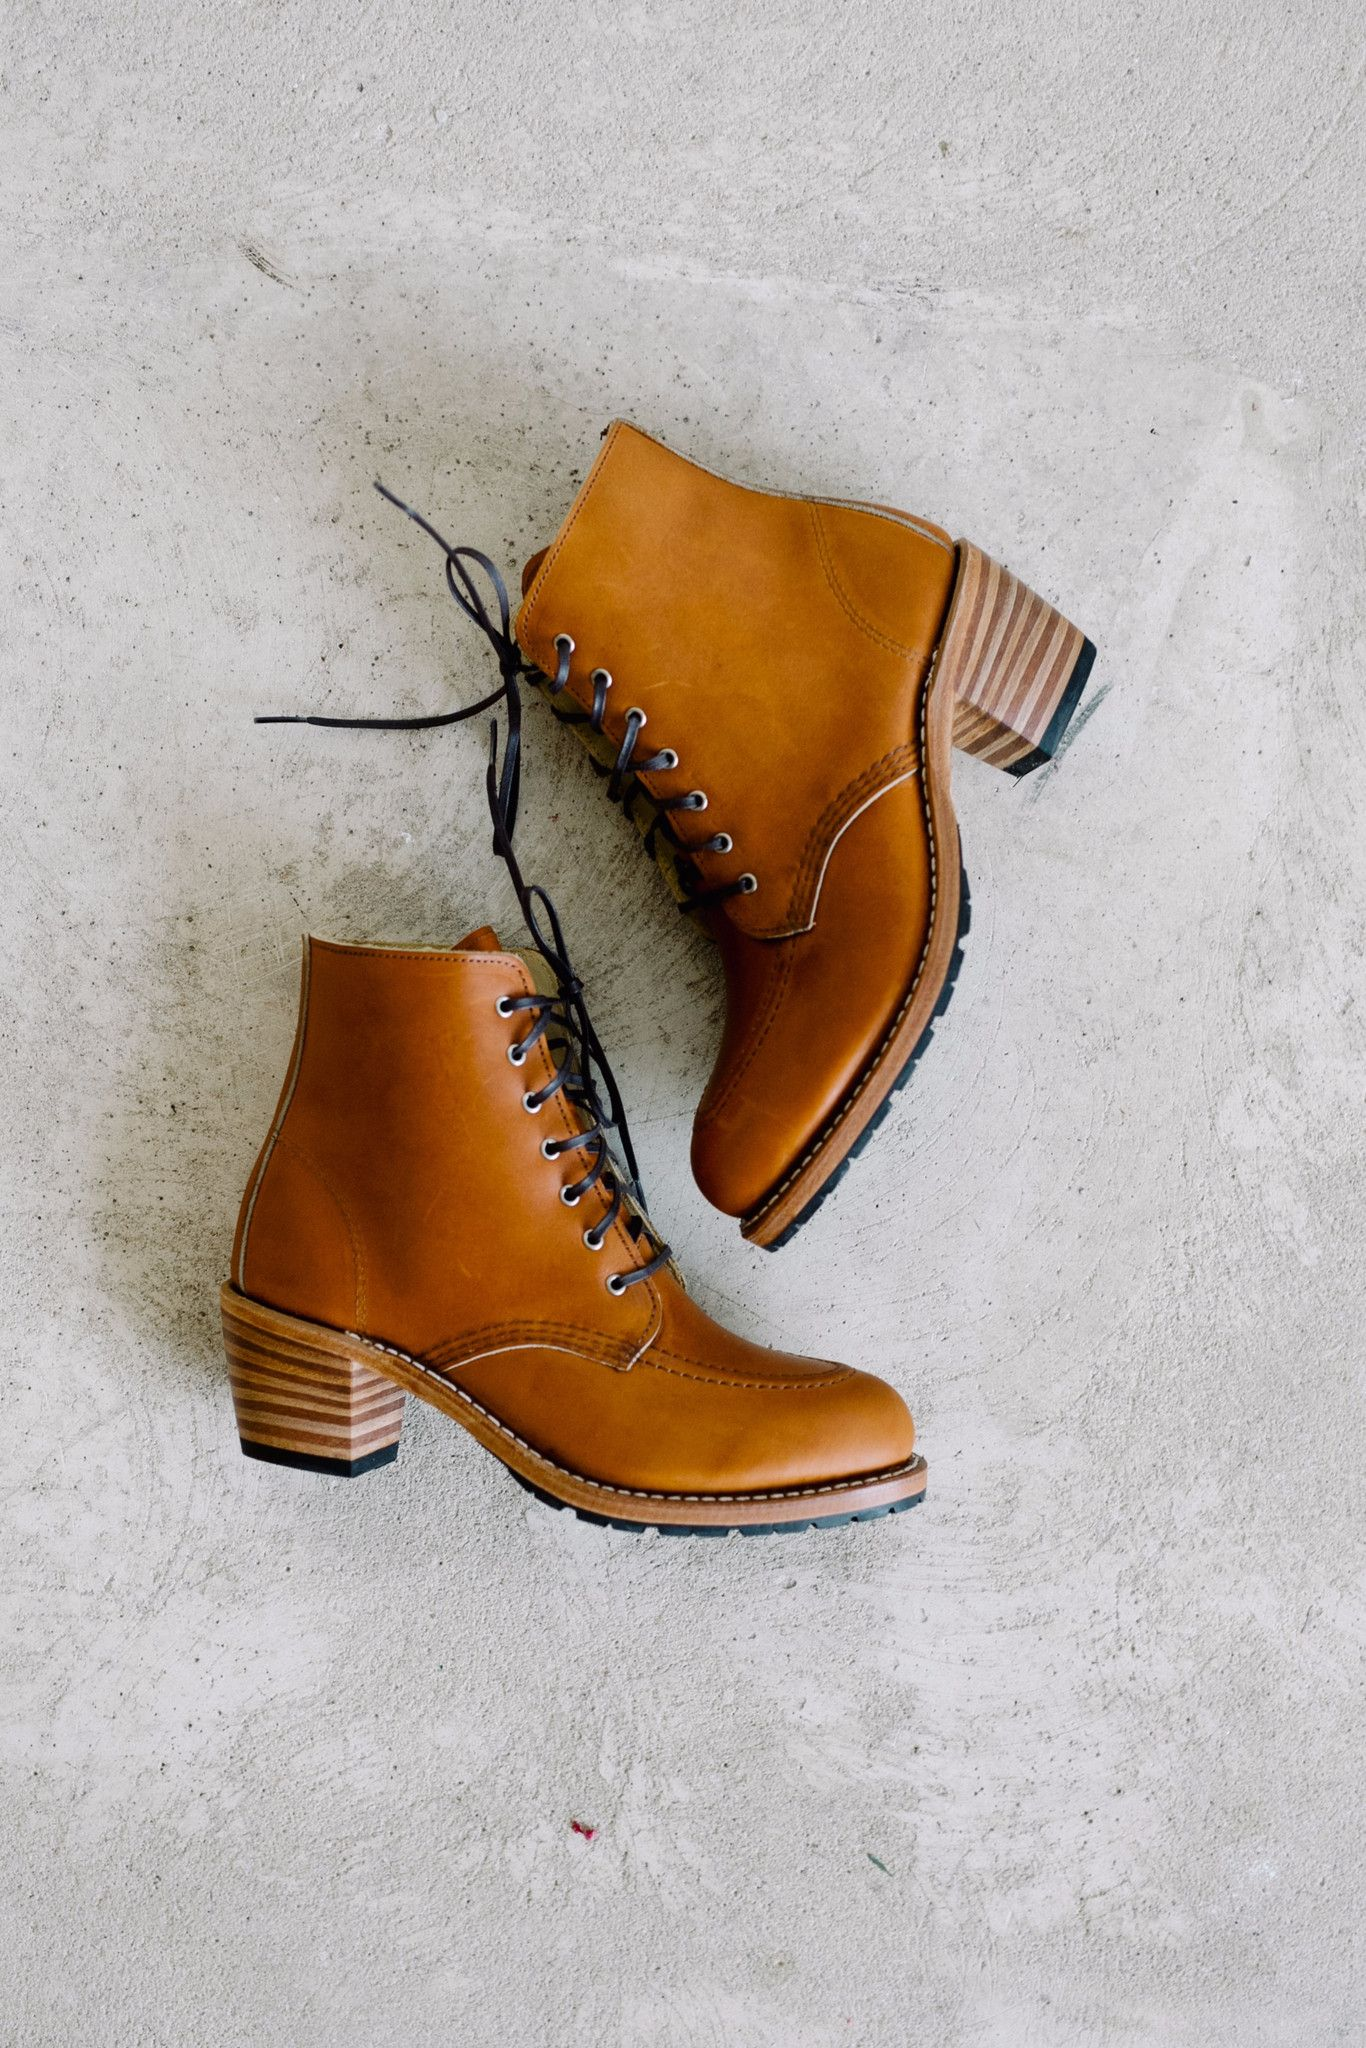 d67eb0f2b5b Red Wing Shoes No. 3404 Clara | i n v e s t m e n t | Shoes, Red ...